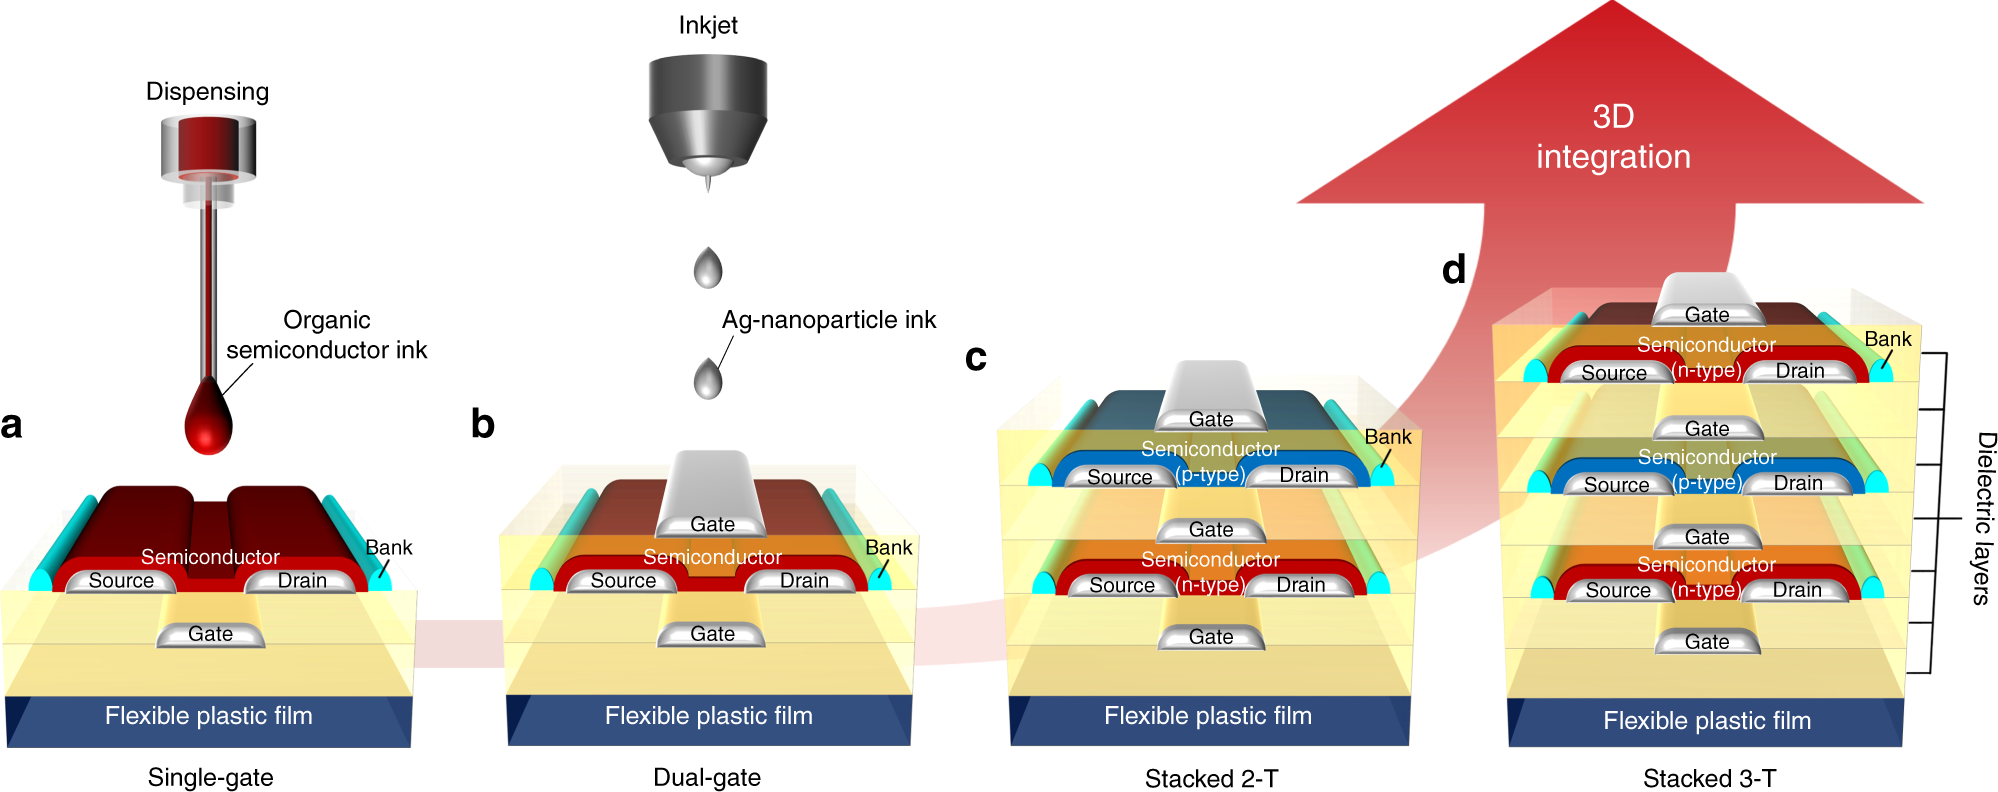 Three-dimensional monolithic integration in flexible printed